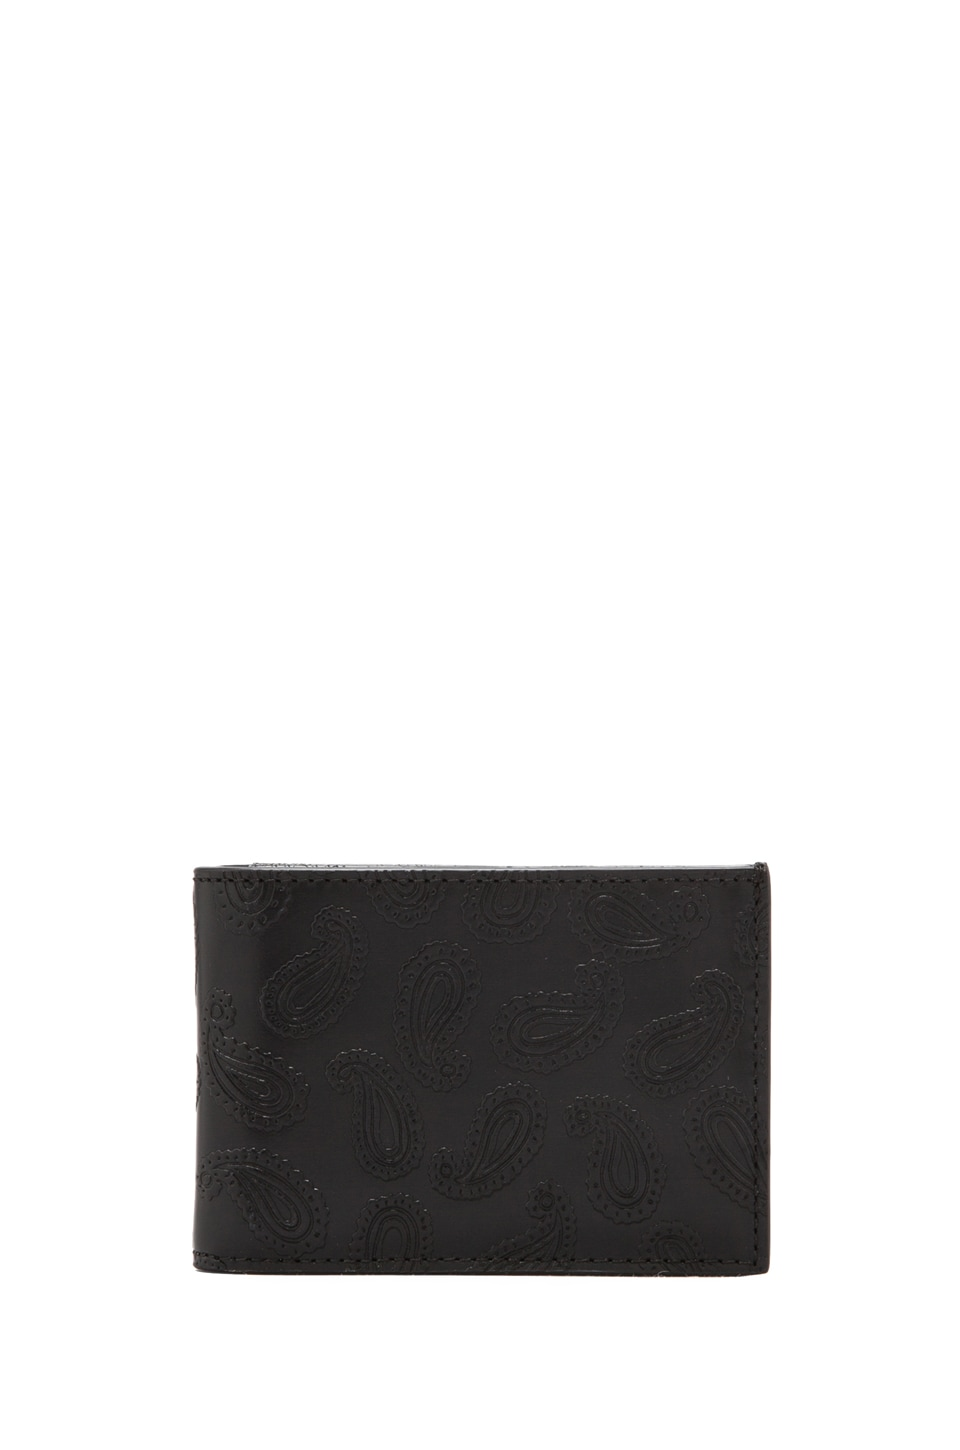 Jack Spade Embossed Paisley Index Wallet in Black/Grey Stripe